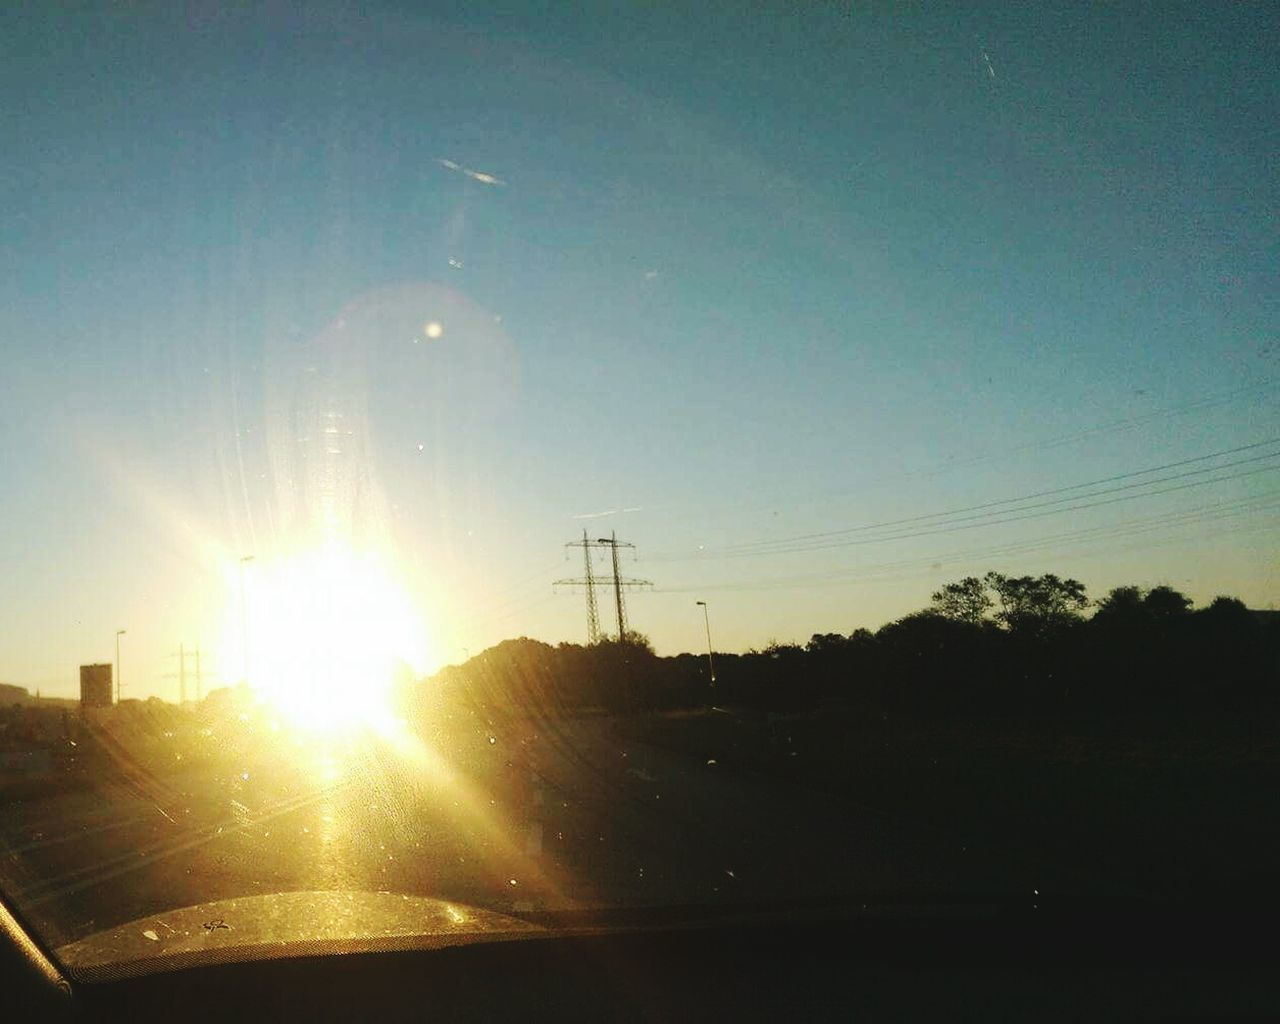 sun, car, vehicle interior, lens flare, sky, transportation, no people, nature, car interior, windshield, land vehicle, sunset, landscape, sunlight, road, scenics, car point of view, beauty in nature, outdoors, day, tree